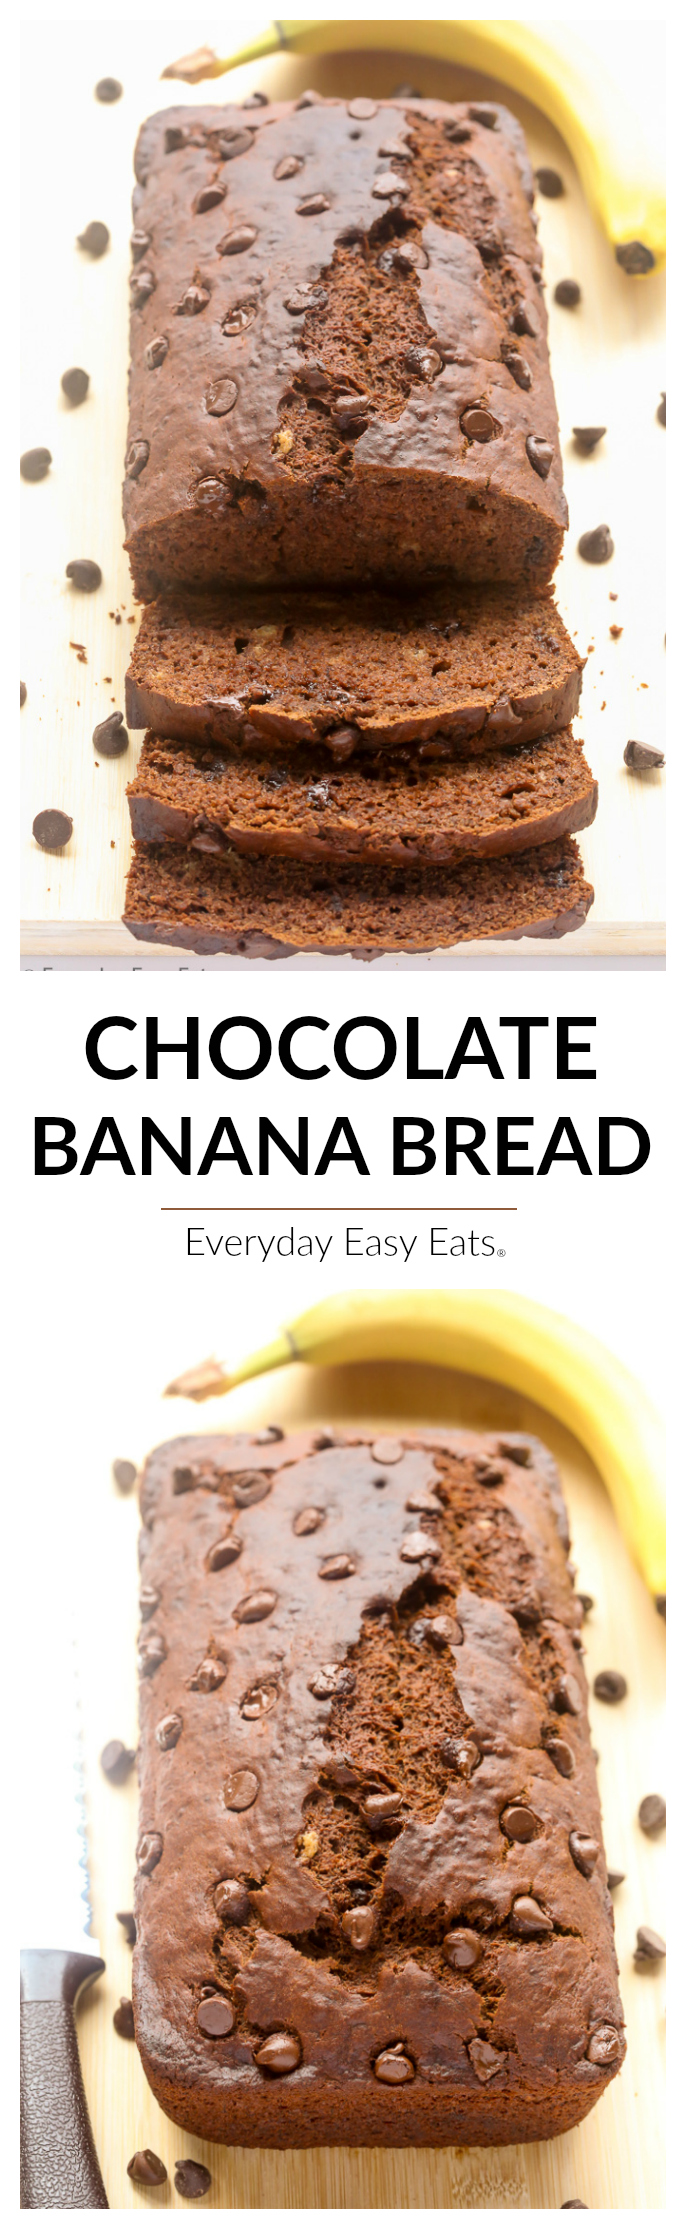 Chocolate banana bread everyday easy eats everyday easy eats all photos and content are copyright protected please do not use any of my recipes text or images without prior permission forumfinder Choice Image